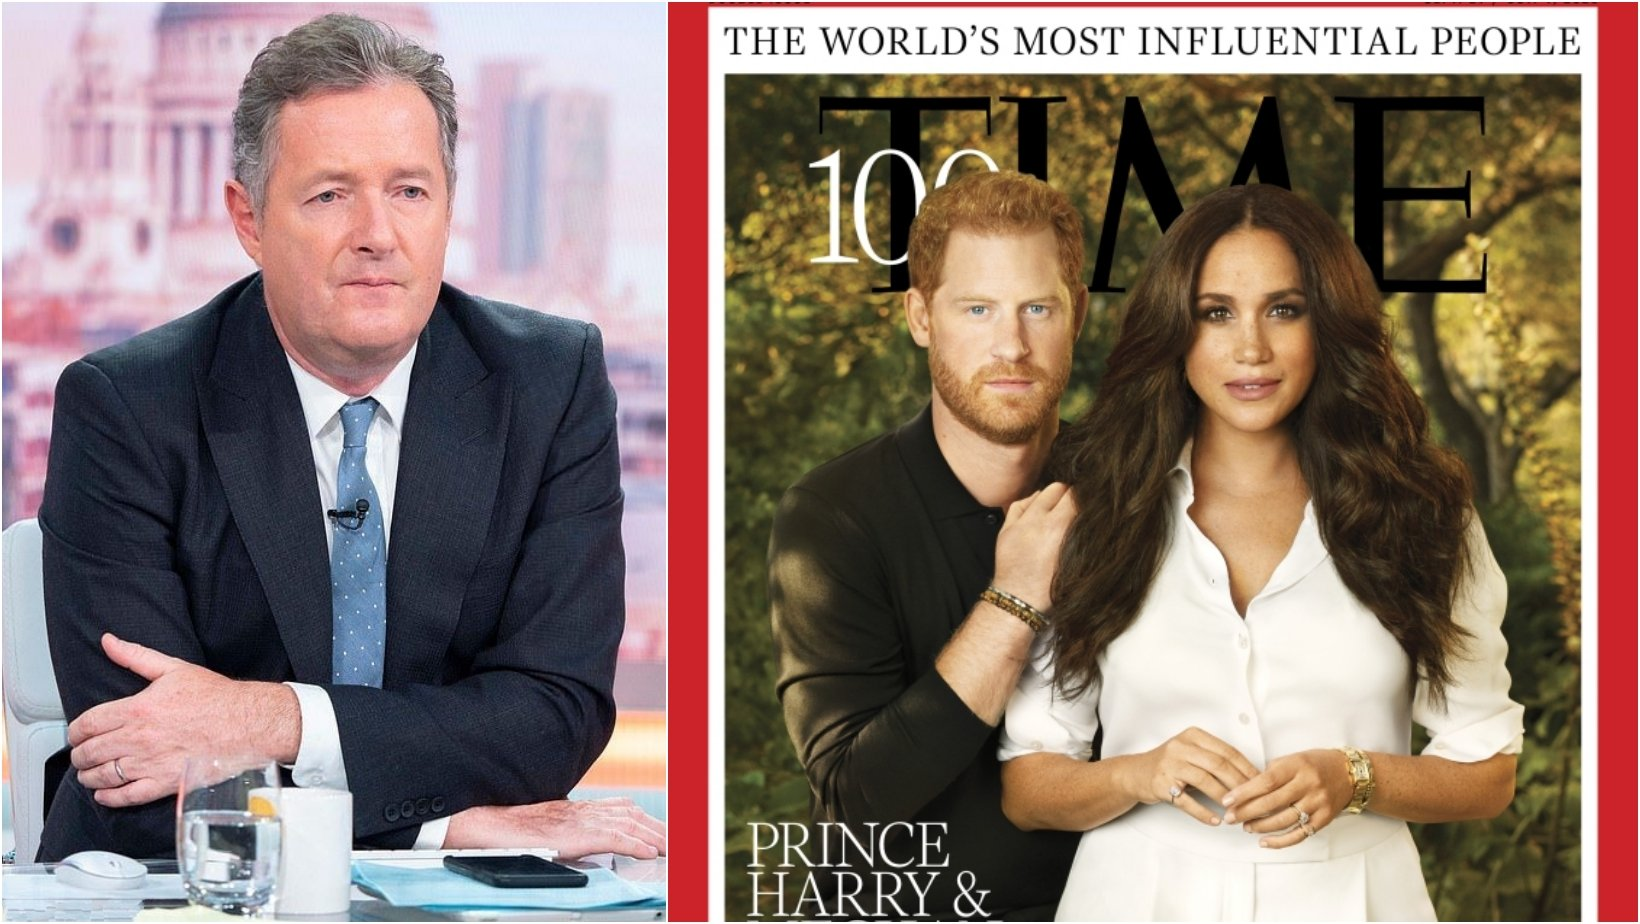 6 facebook cover 26.jpg?resize=1200,630 - Piers Morgan Trolled Prince Harry And Meghan Markle's Time Magazine's 'Most Influential People' Cover